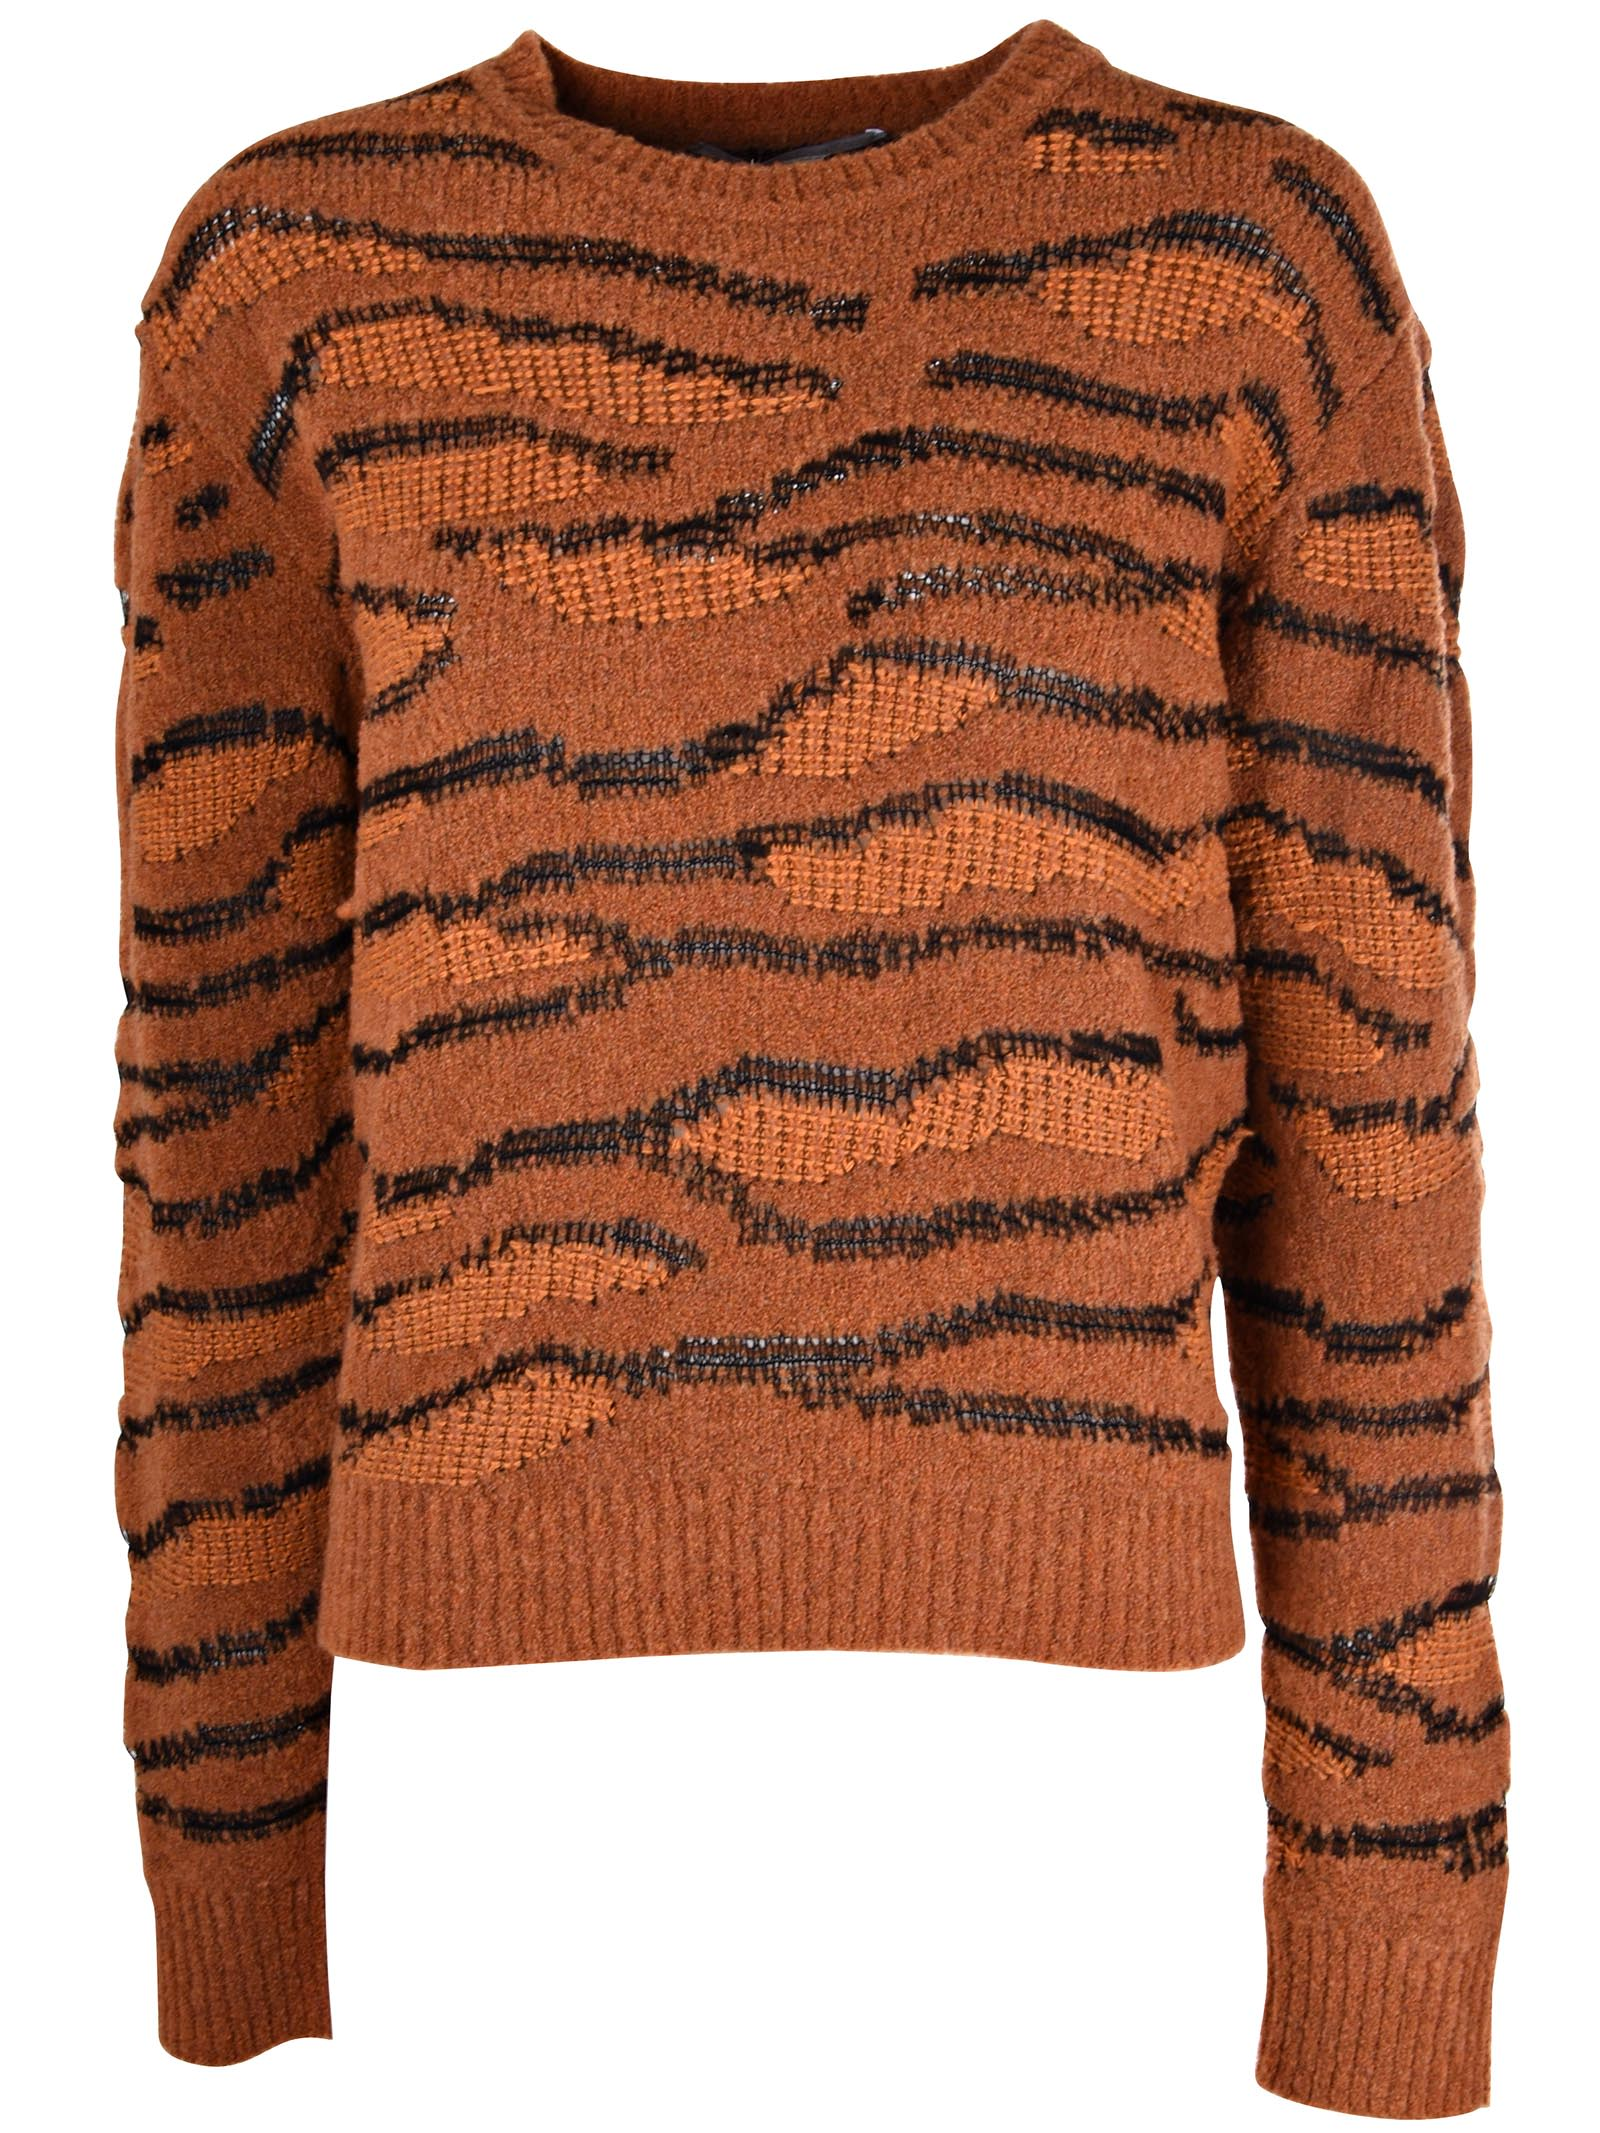 STELLA MCCARTNEY ROUNDNECK SWEATER